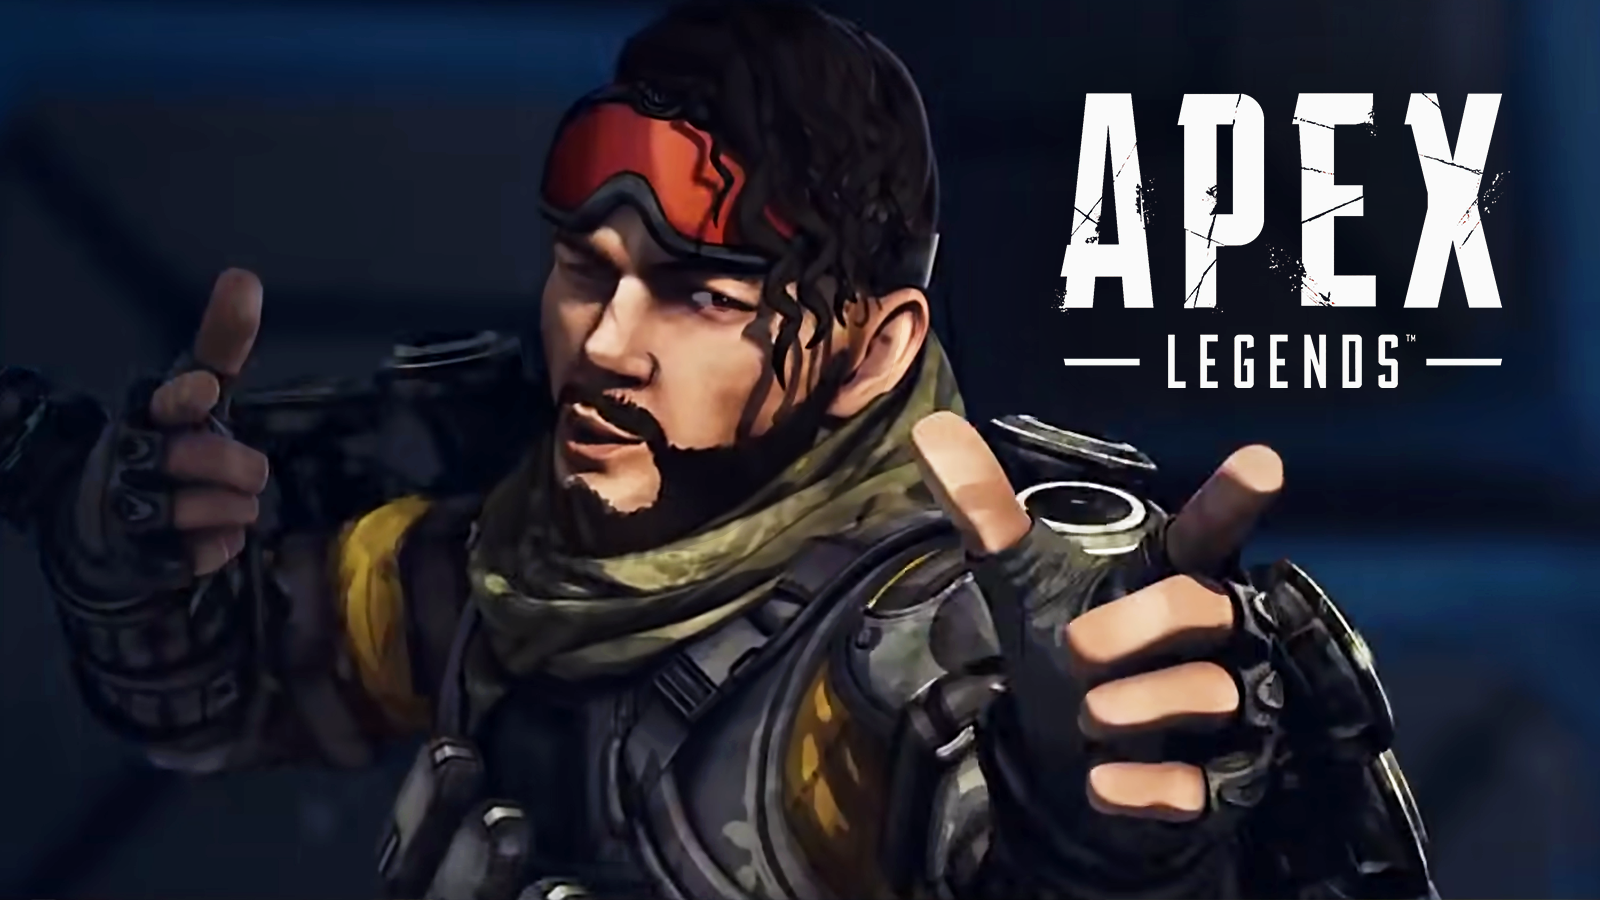 Mirage pointing next to Apex Legends logo